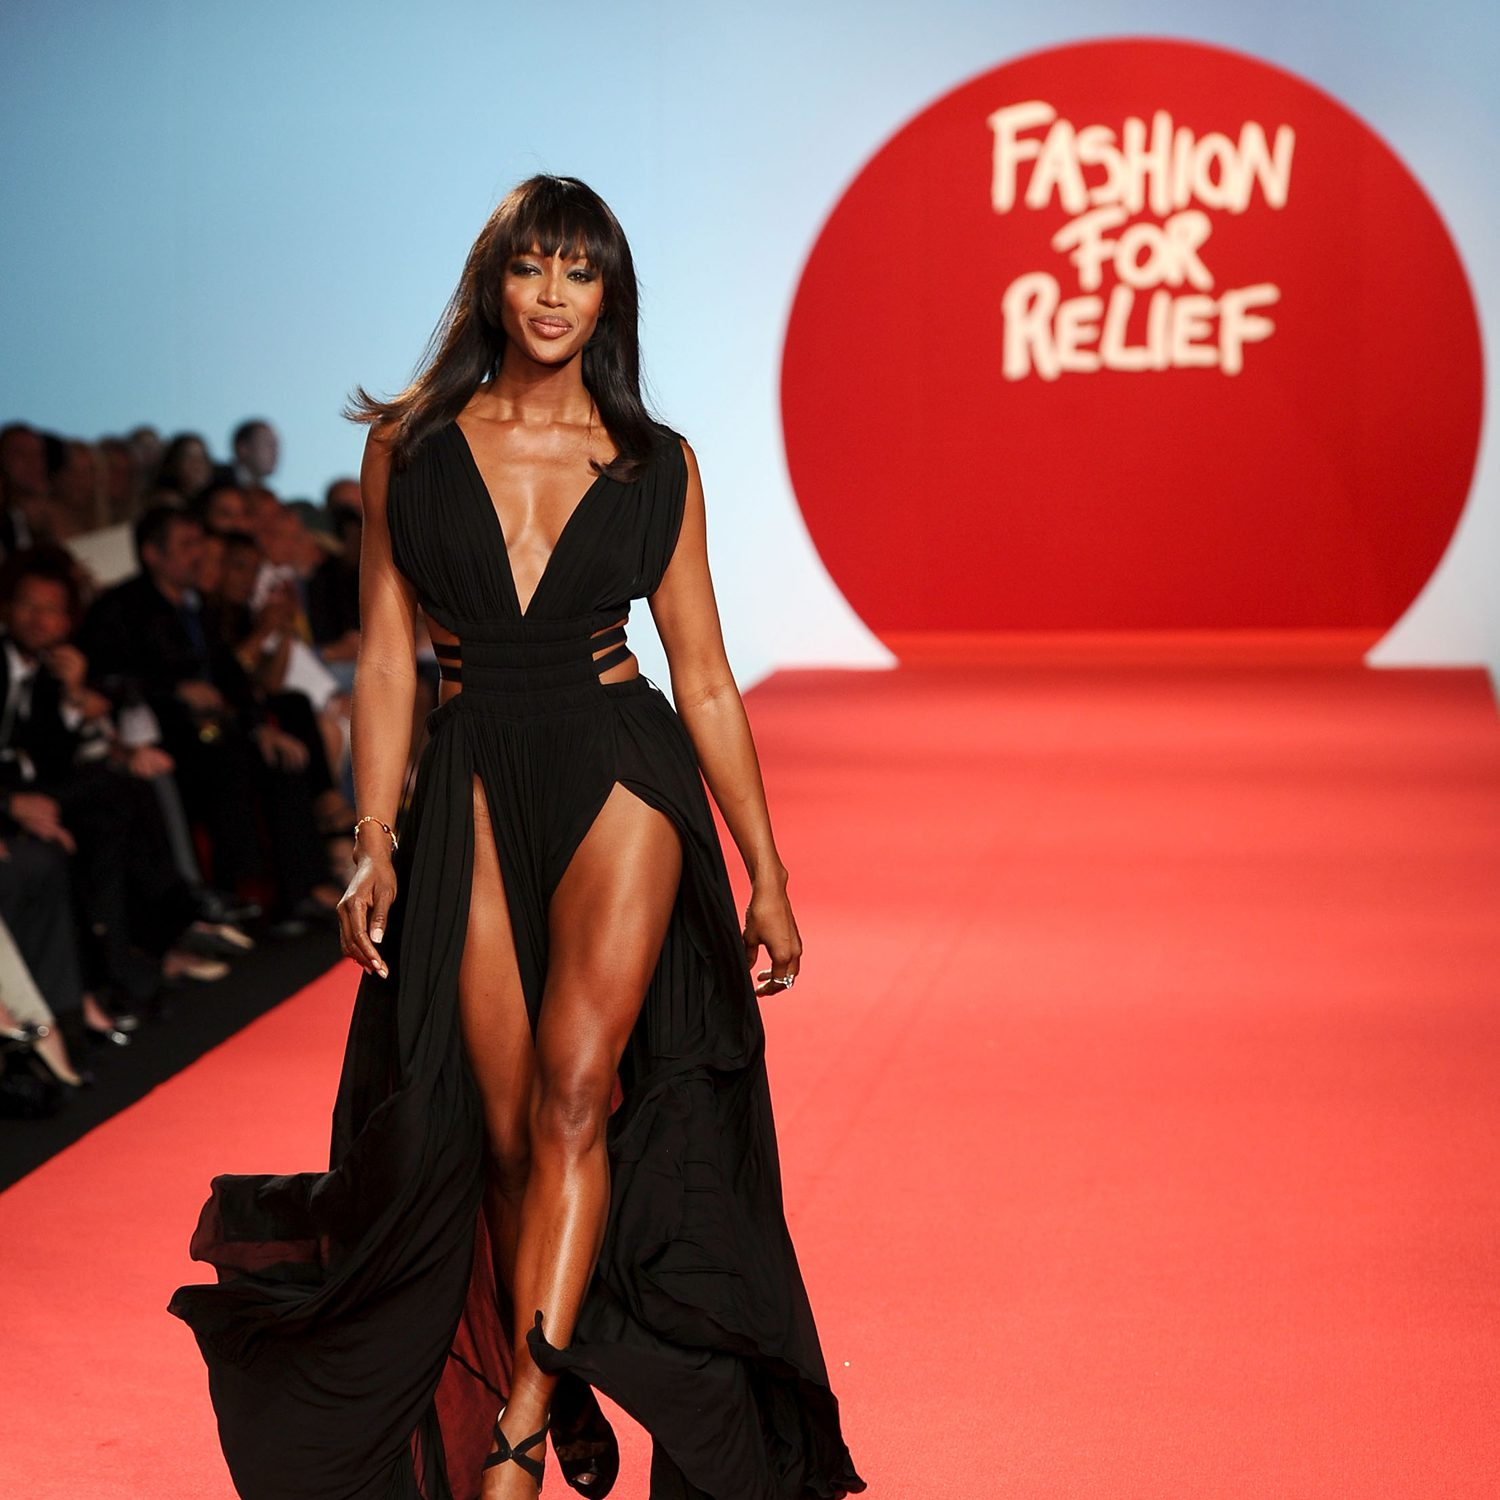 fashion for relief cannes